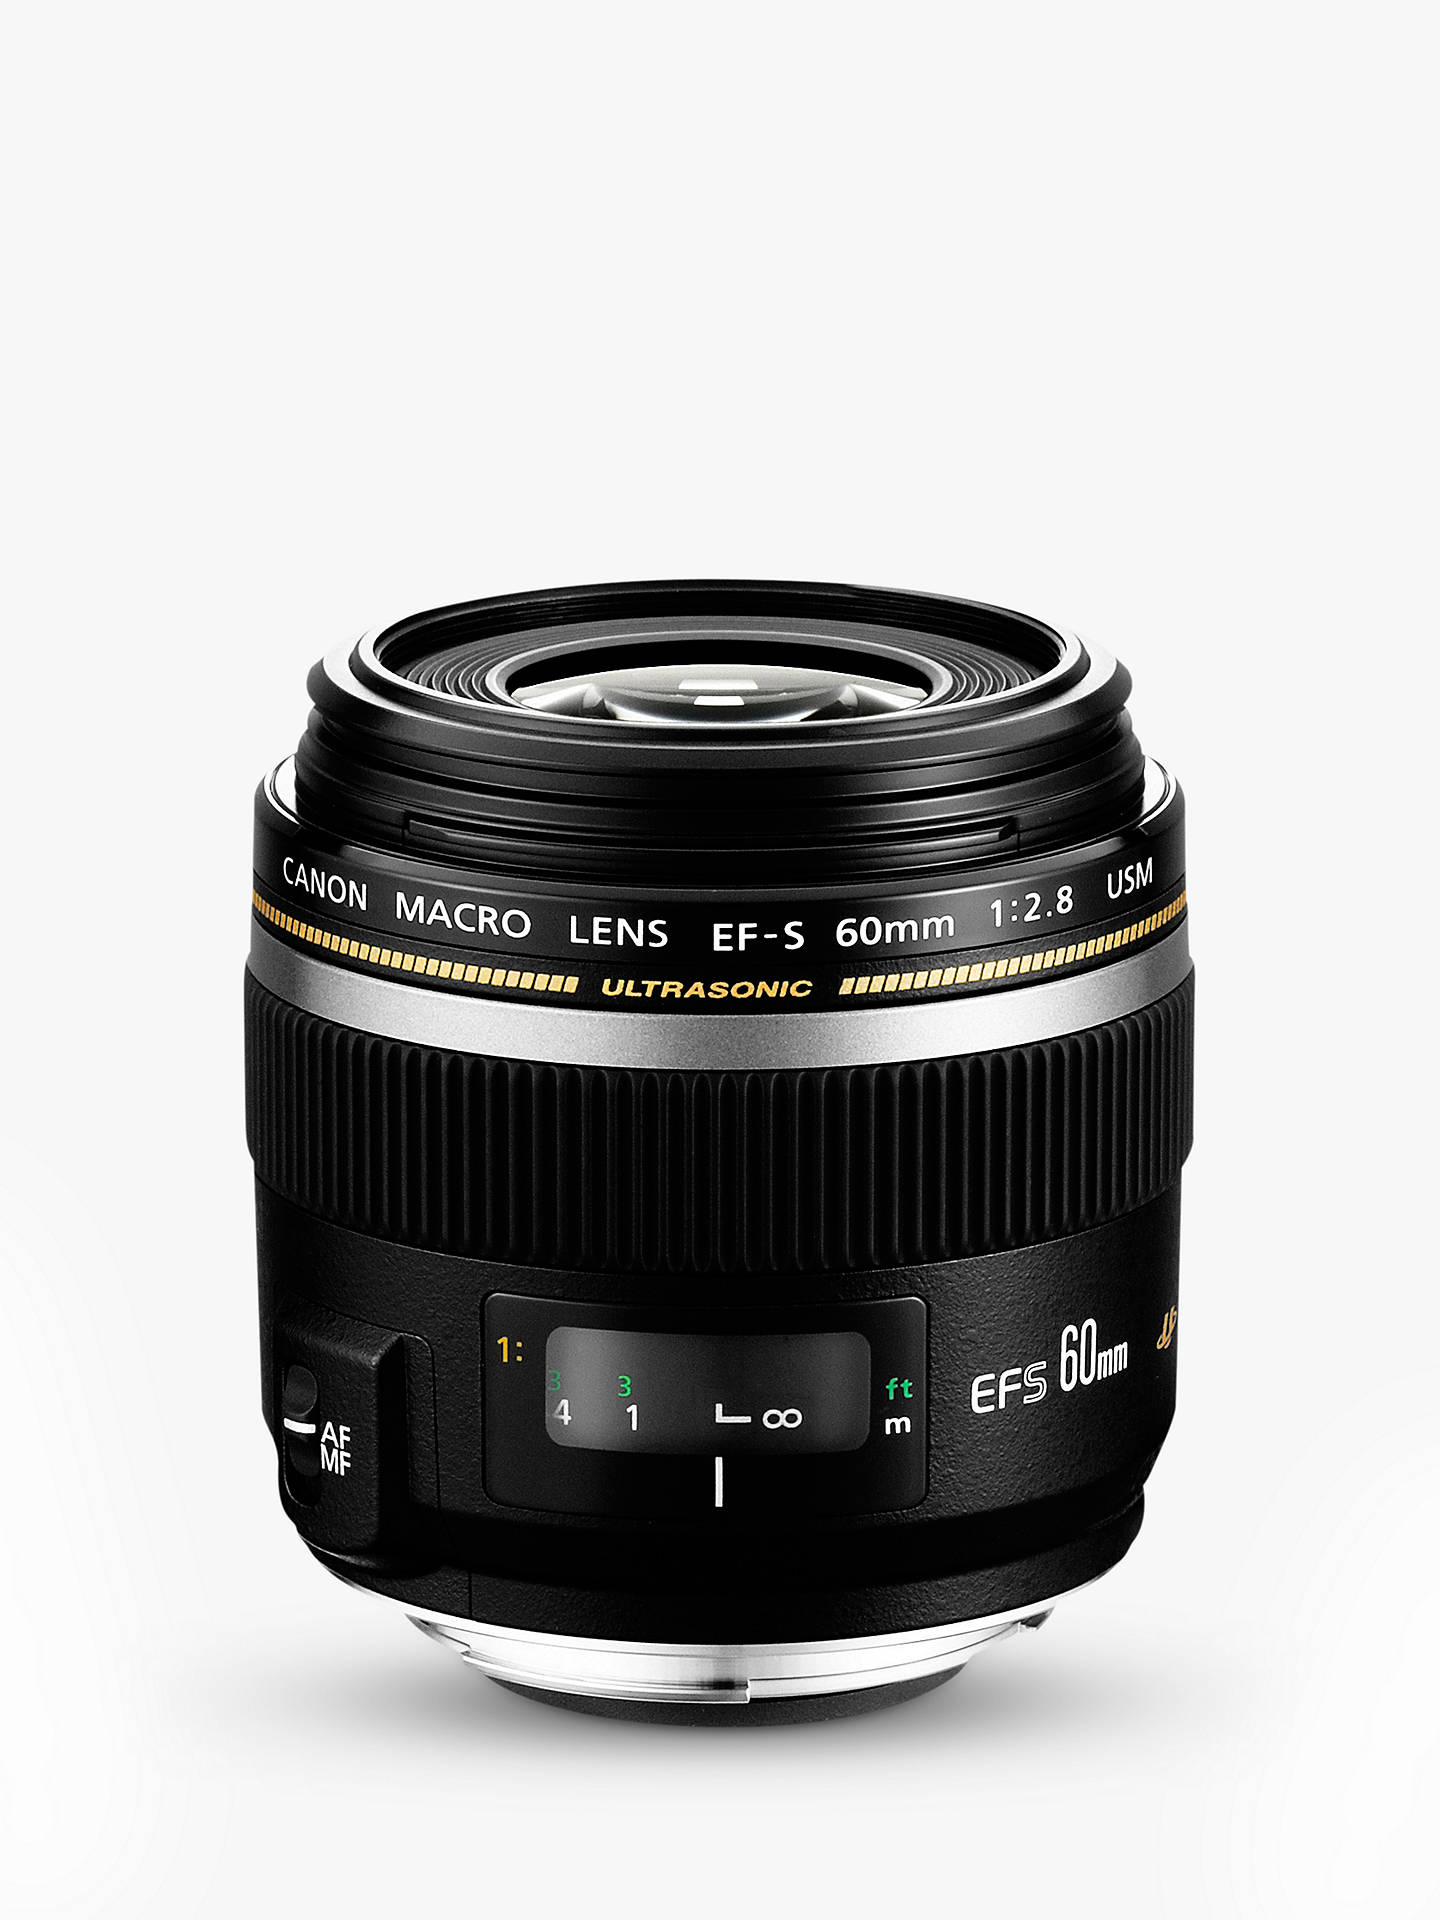 Buy Canon EF-S 60mm f/2.8 USM Macro Lens Online at johnlewis.com